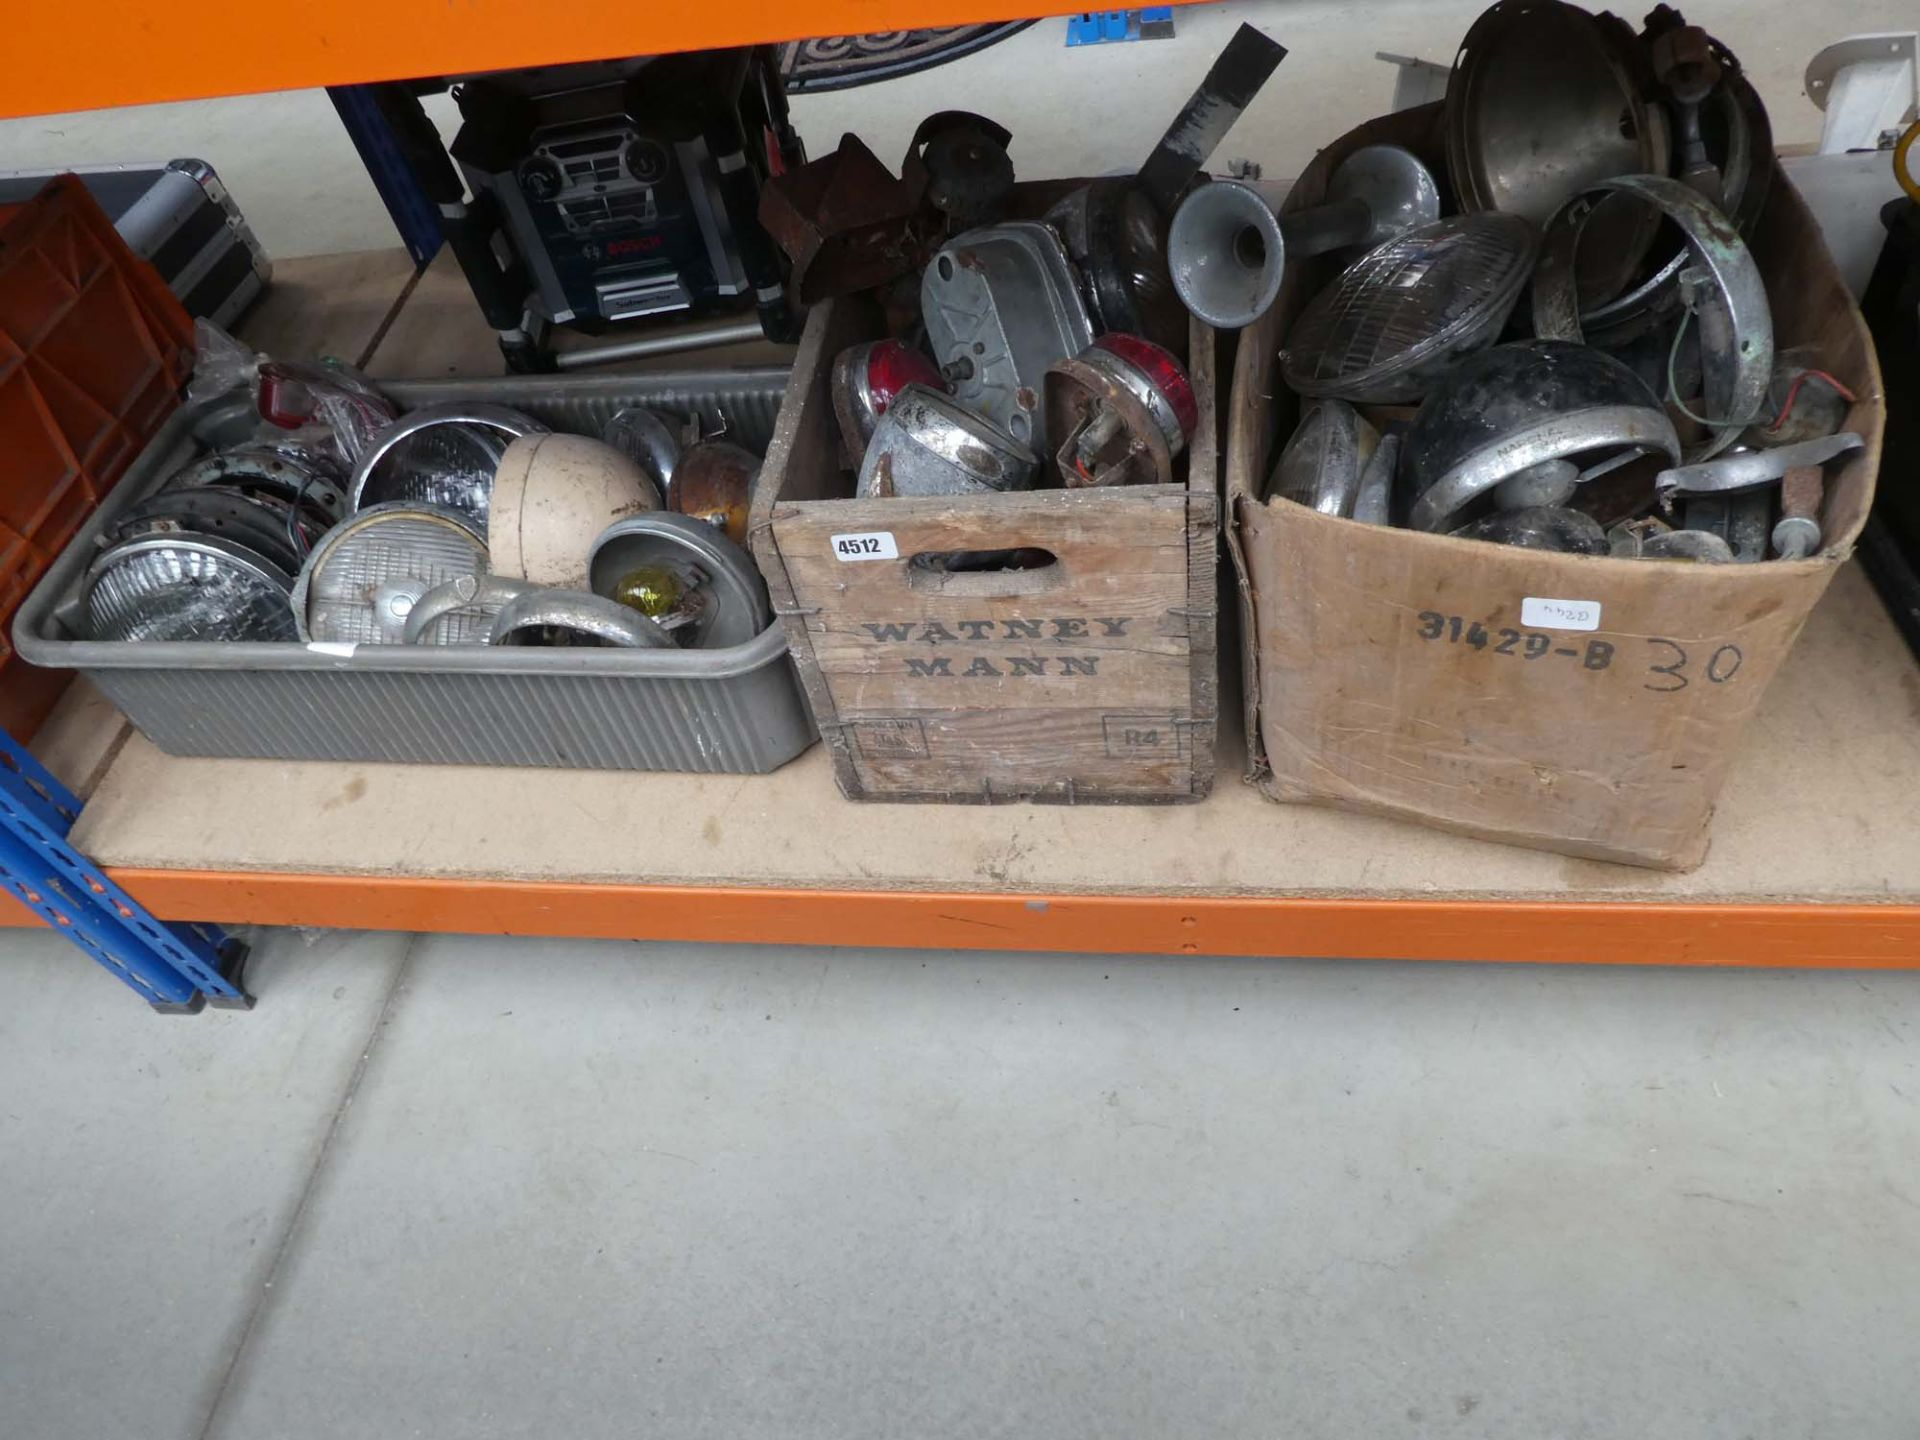 3 large boxes of vintage car lights and spares